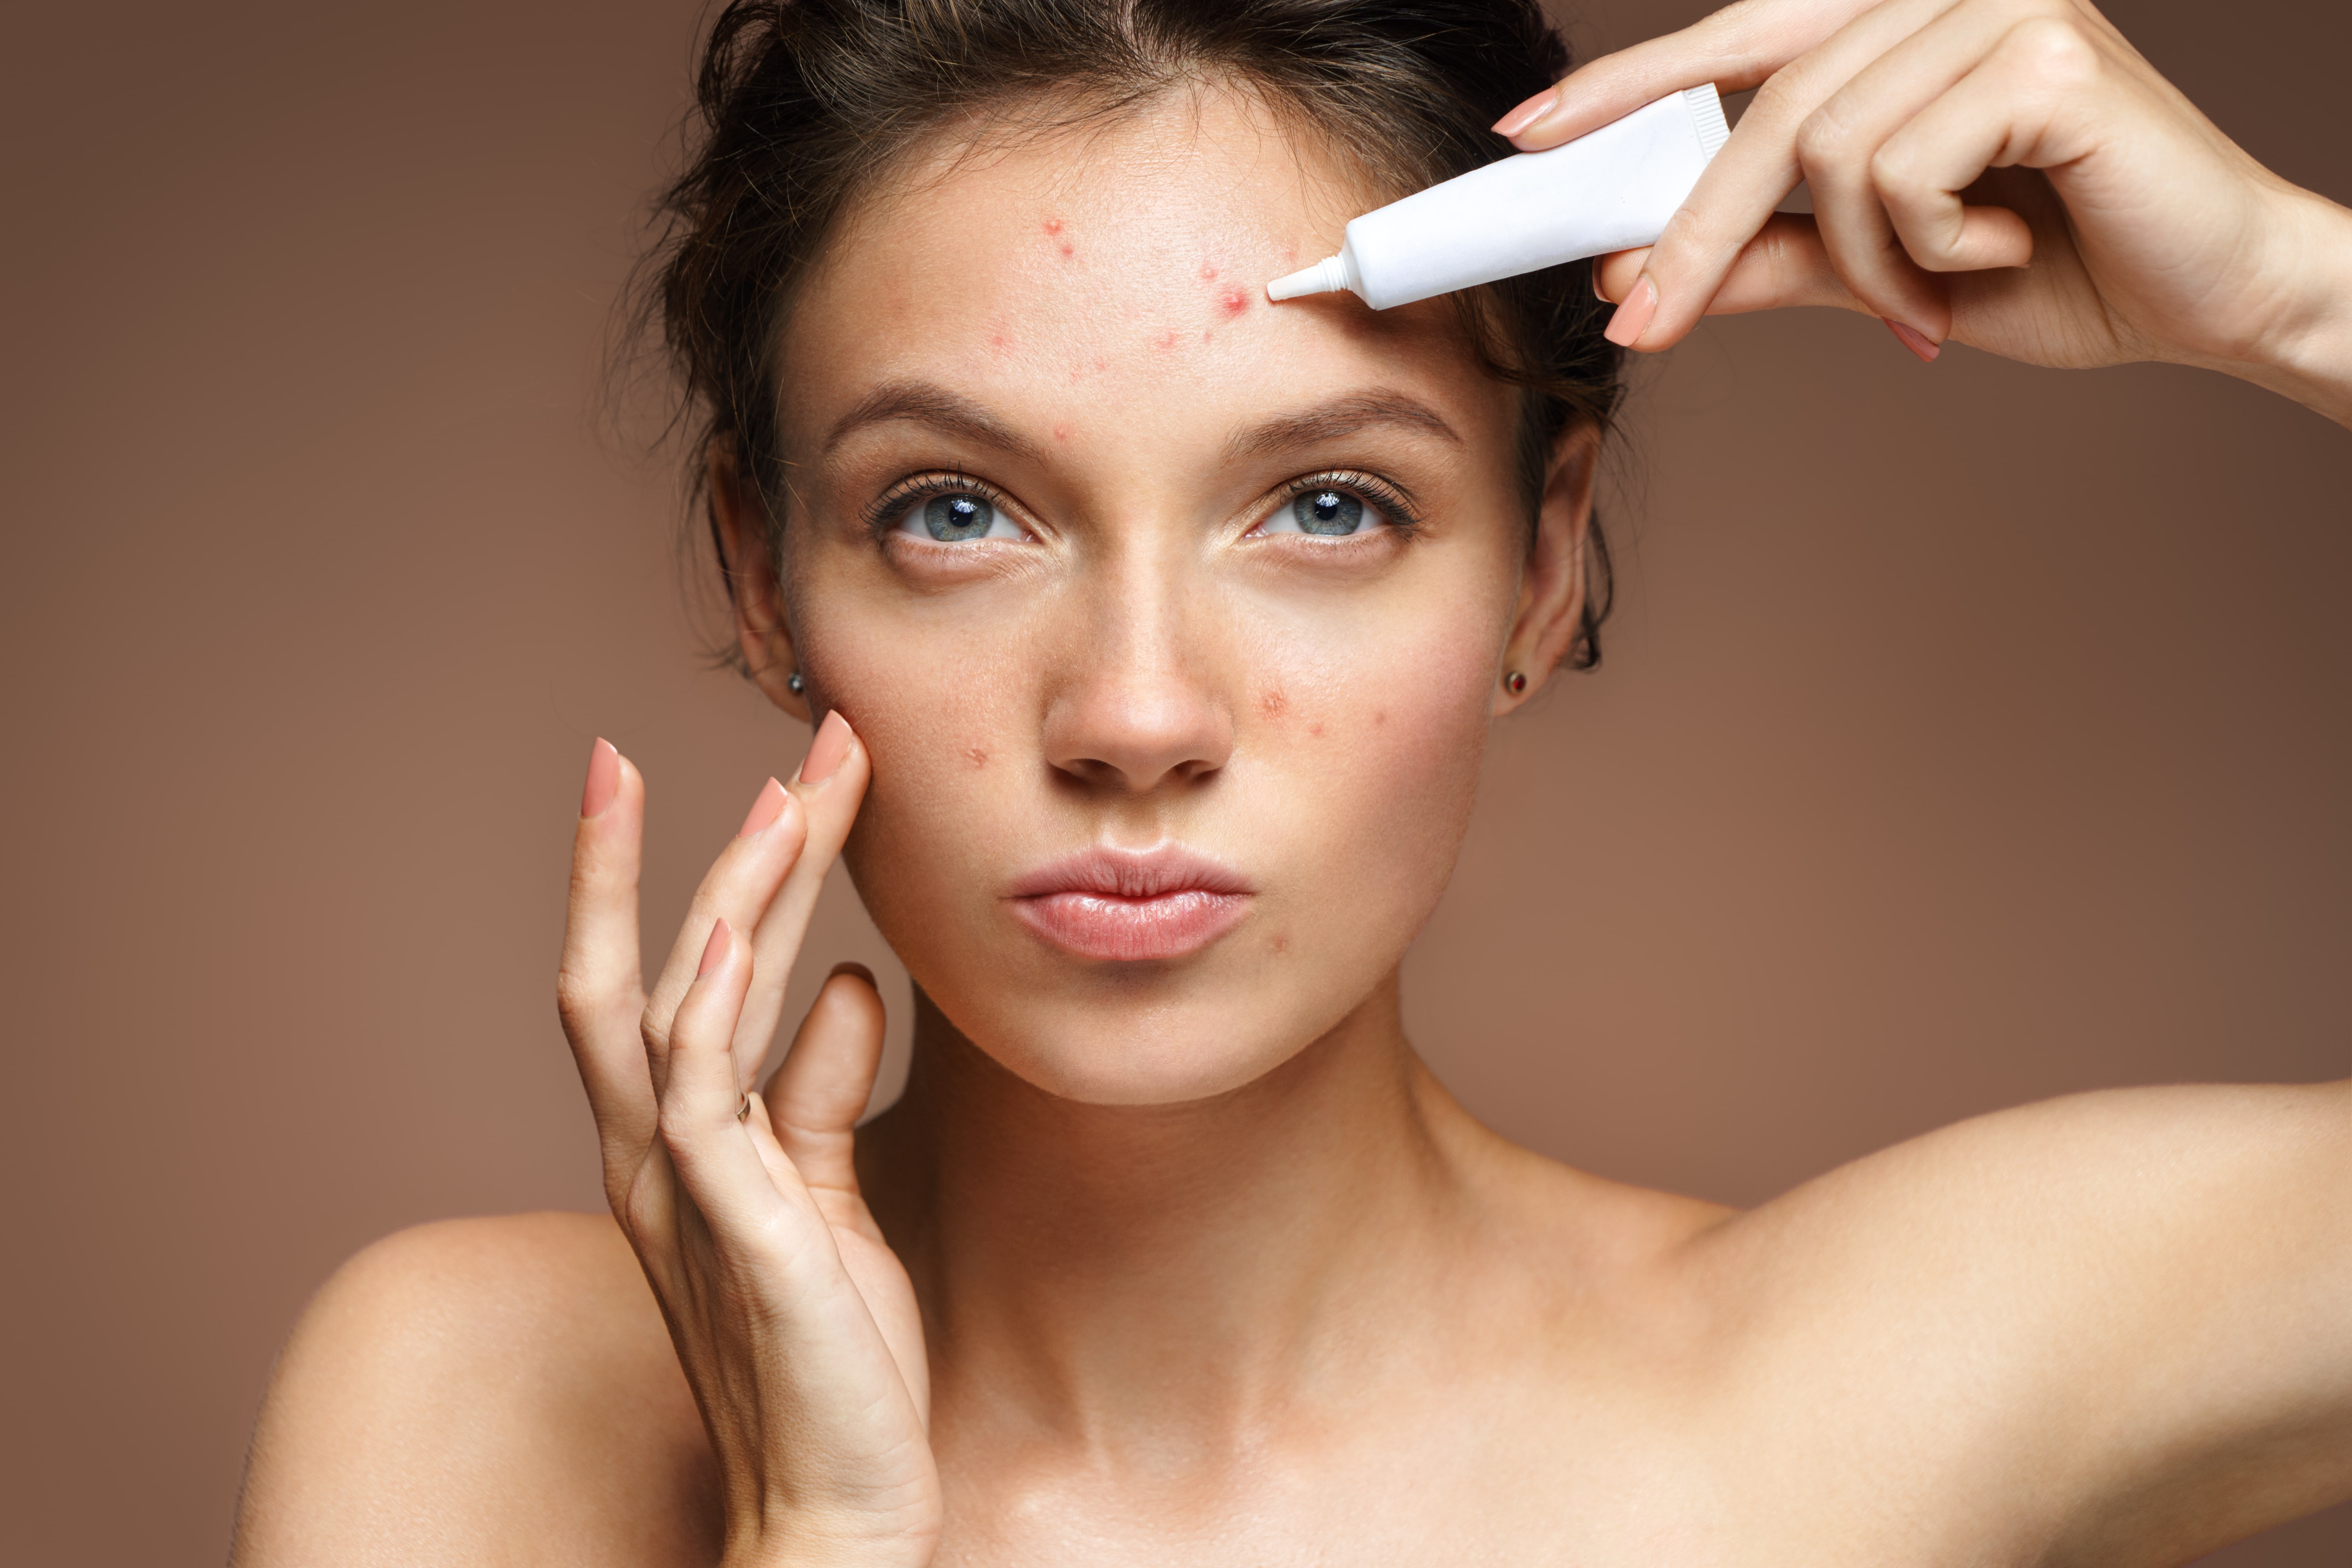 7 Causes of Adult Acne and Ways to Treat It